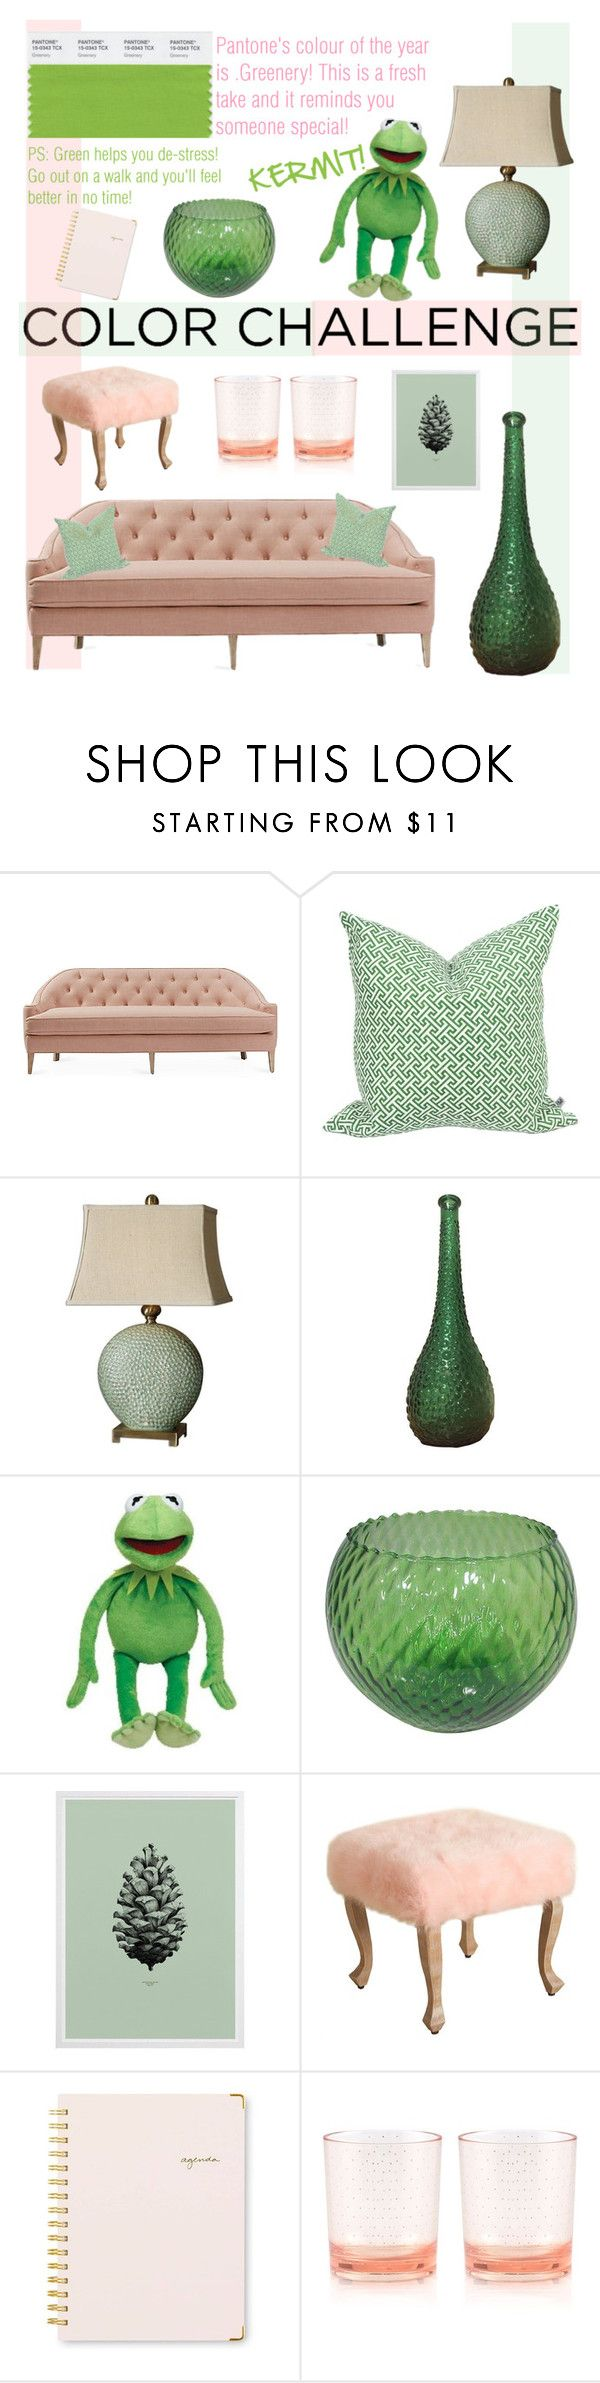 """""""Colour Challenge - Green and Blush - living room"""" by aemun-ahmad ❤ liked on Polyvore featuring interior, interiors, interior design, home, home decor, interior decorating, Dana Gibson, Nina Kullberg, Uttermost and Sugar Paper"""